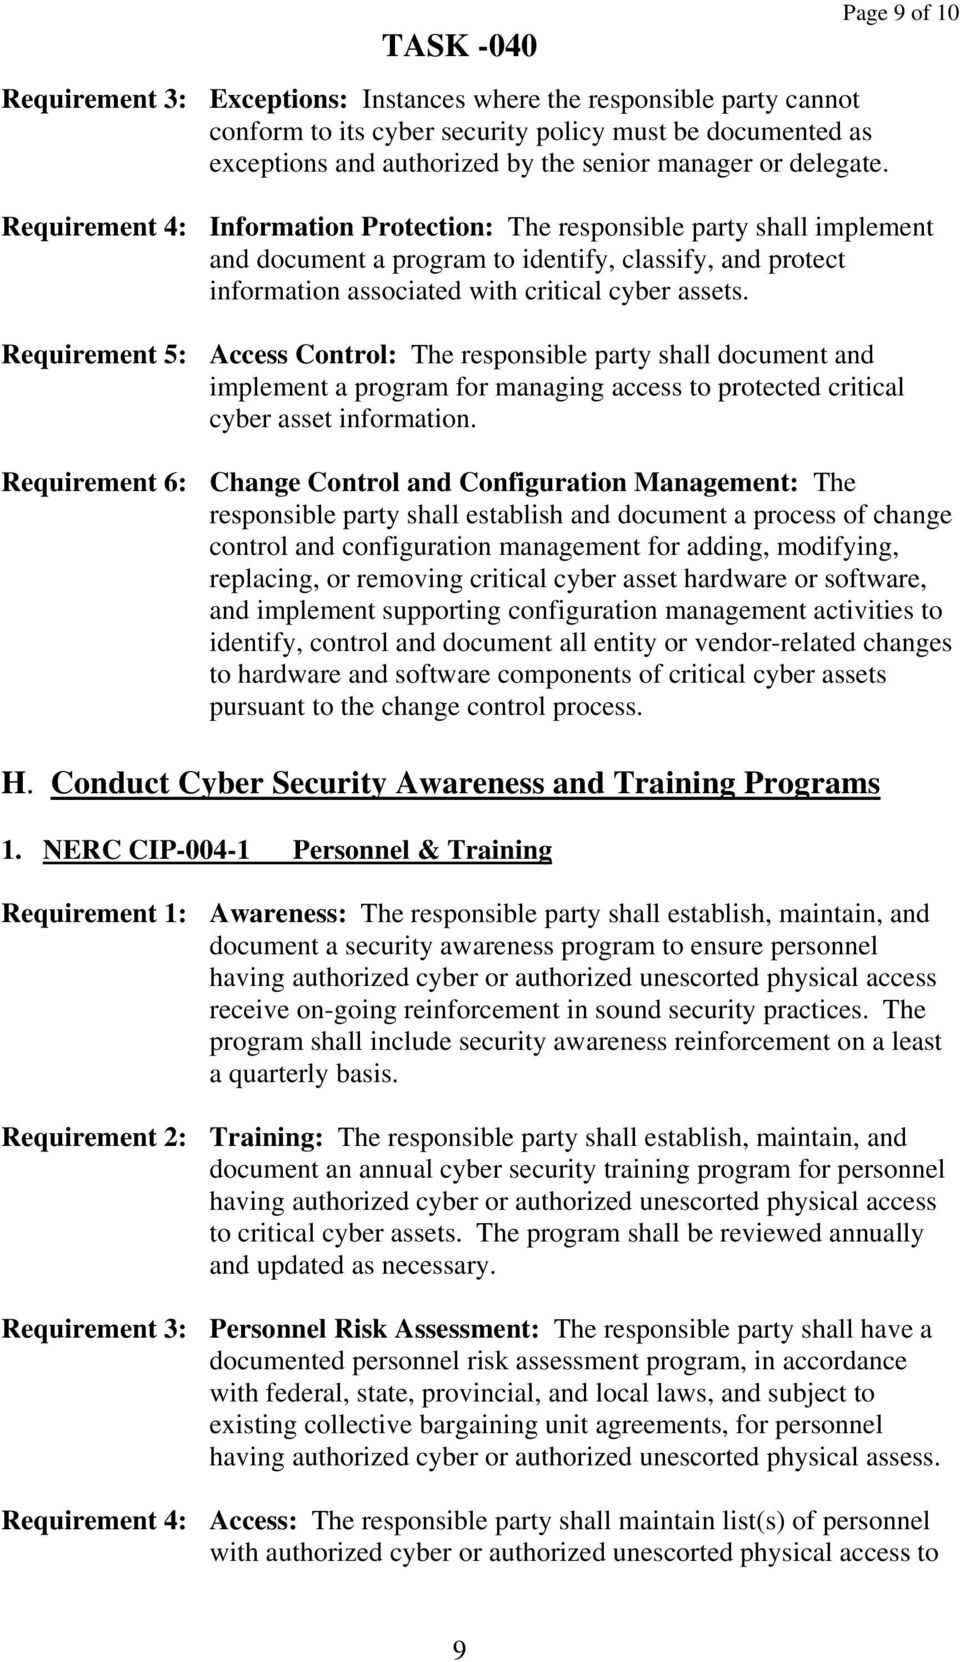 Requirement 5: Access Control: The responsible party shall document and implement a program for managing access to protected critical cyber asset information.